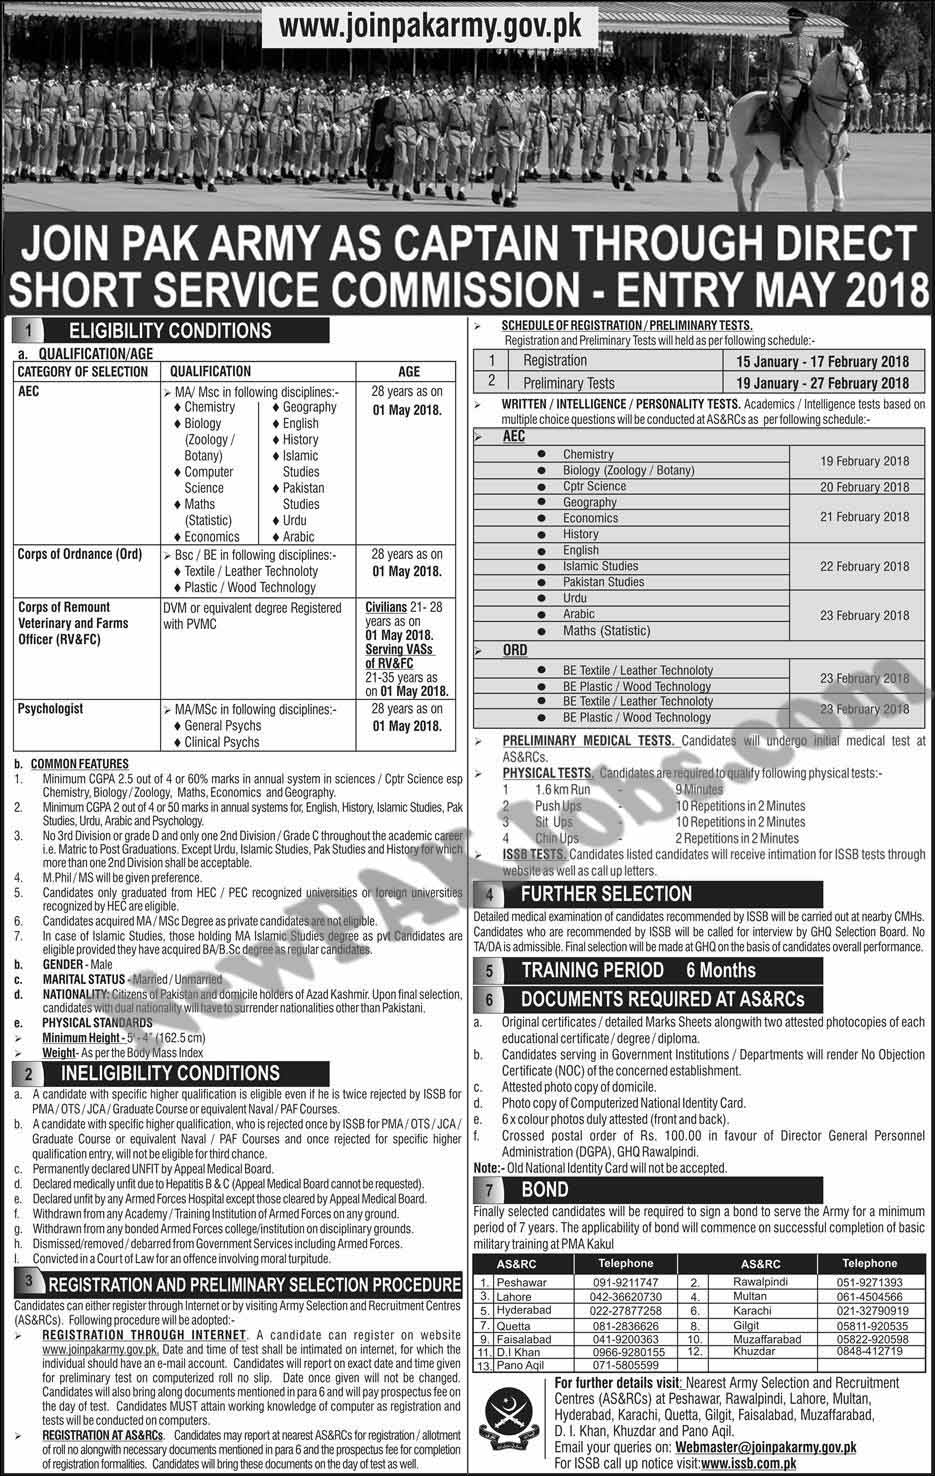 Jobs in Pakistan Army as Captain through Direct Short Service Commission Jan 2018